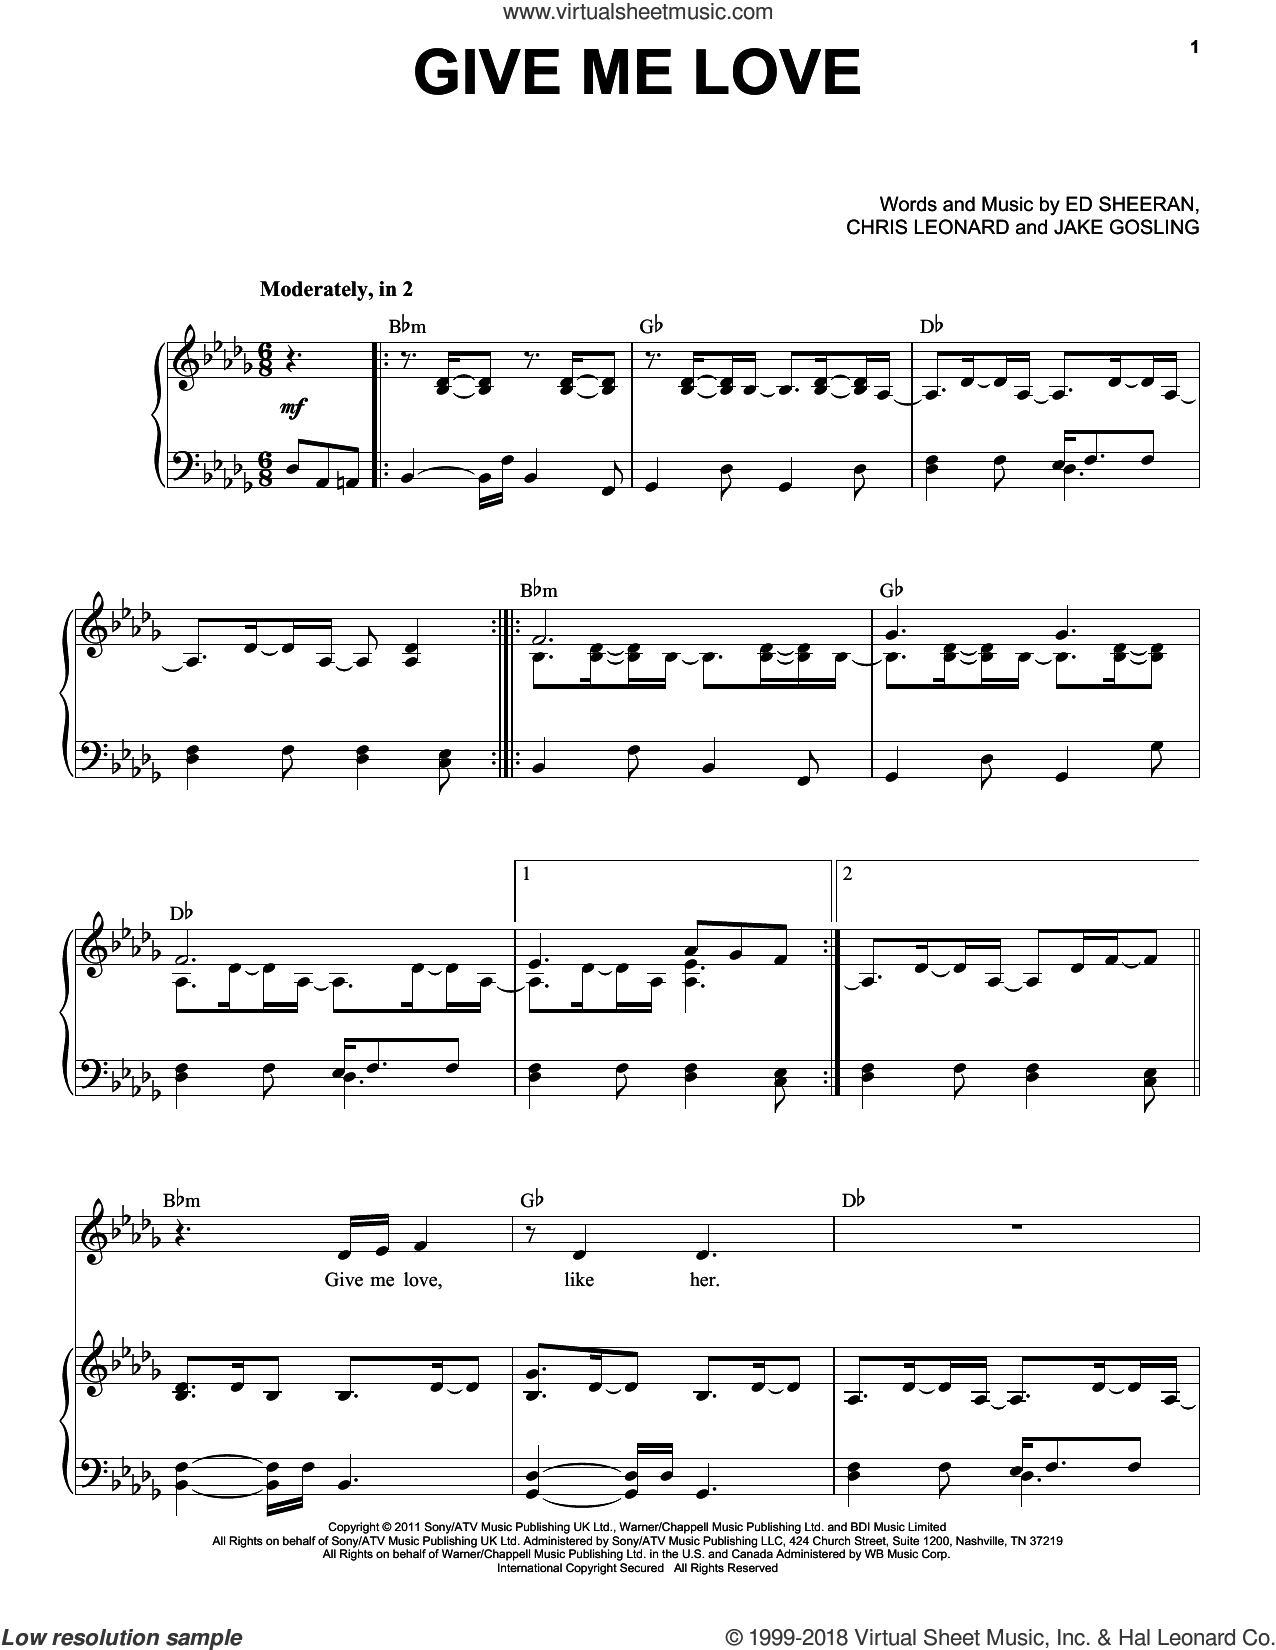 Give Me Love sheet music for voice and piano by Ed Sheeran, Taylor Swift, Chris Leonard and Jake Gosling, intermediate skill level